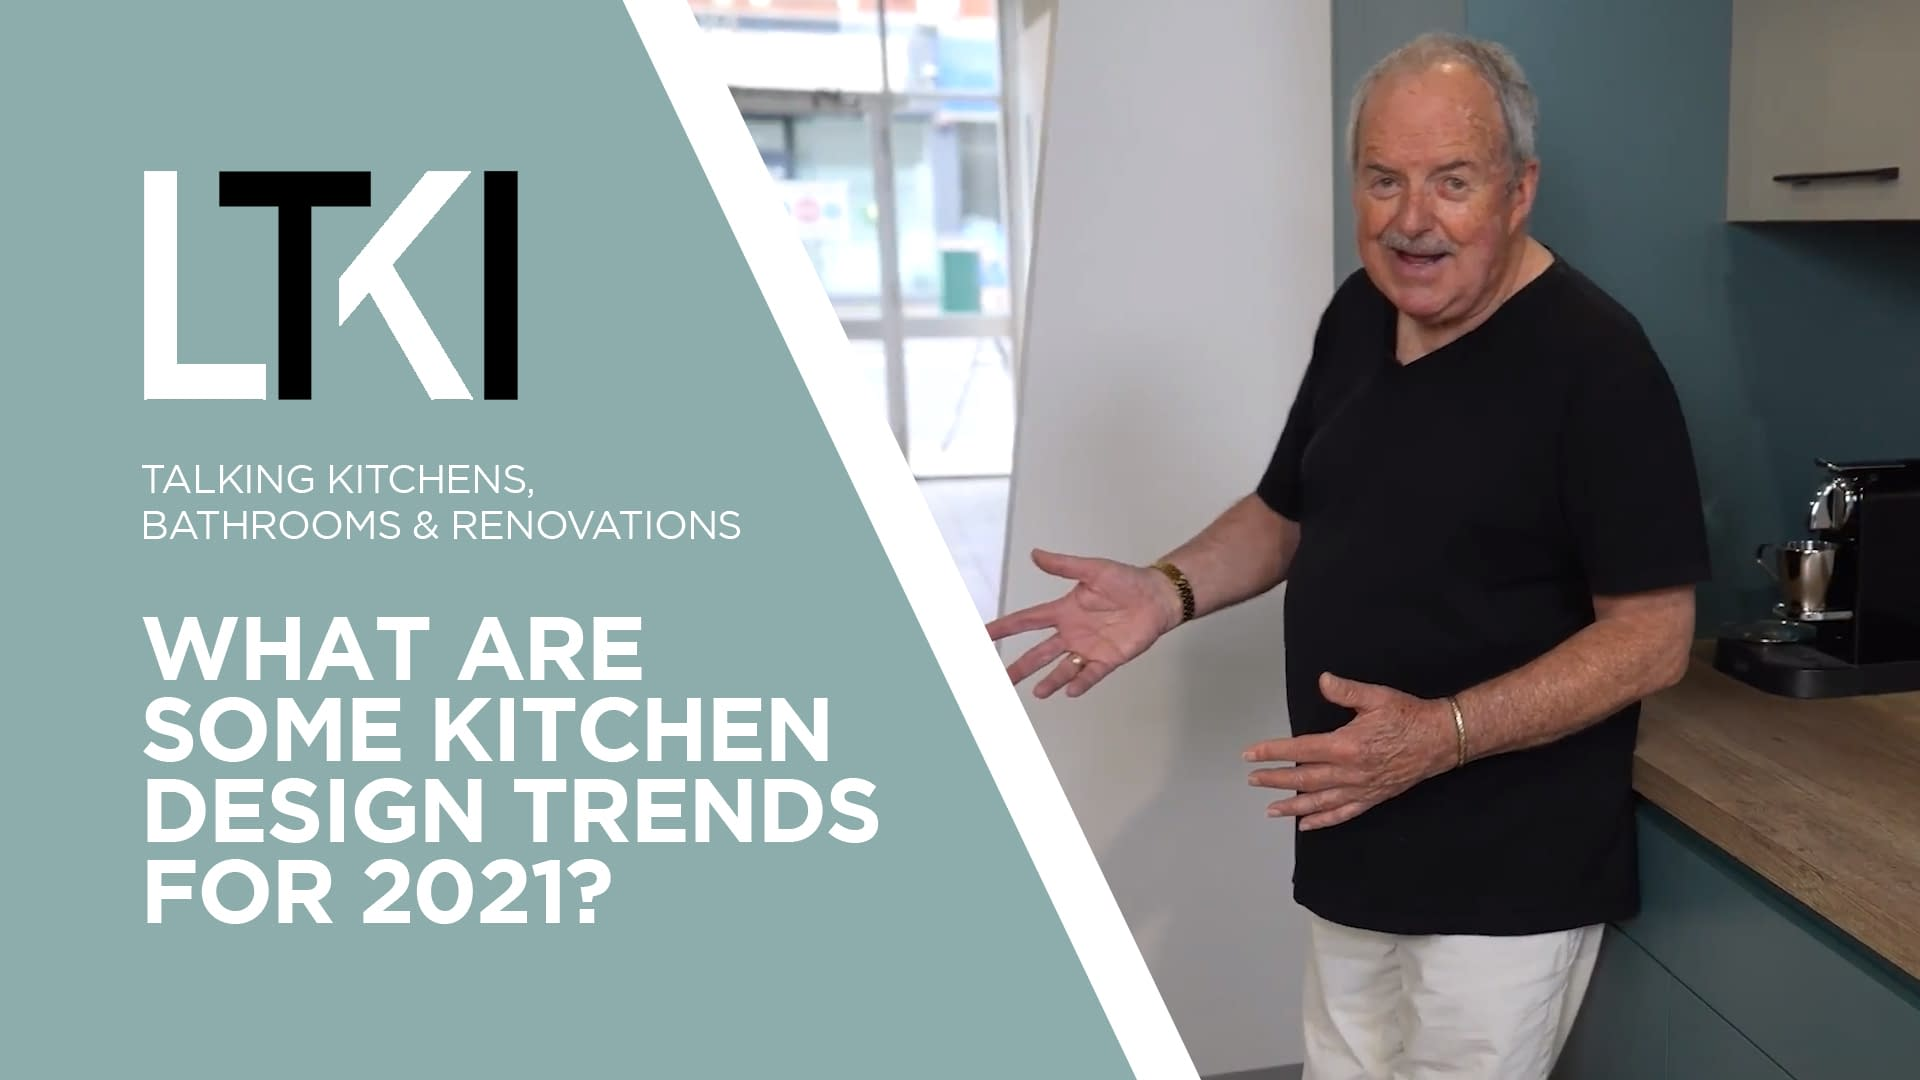 Talking Kitchens, Bathrooms & Renovations: What Are Some Kitchen Design Trends for 2021?